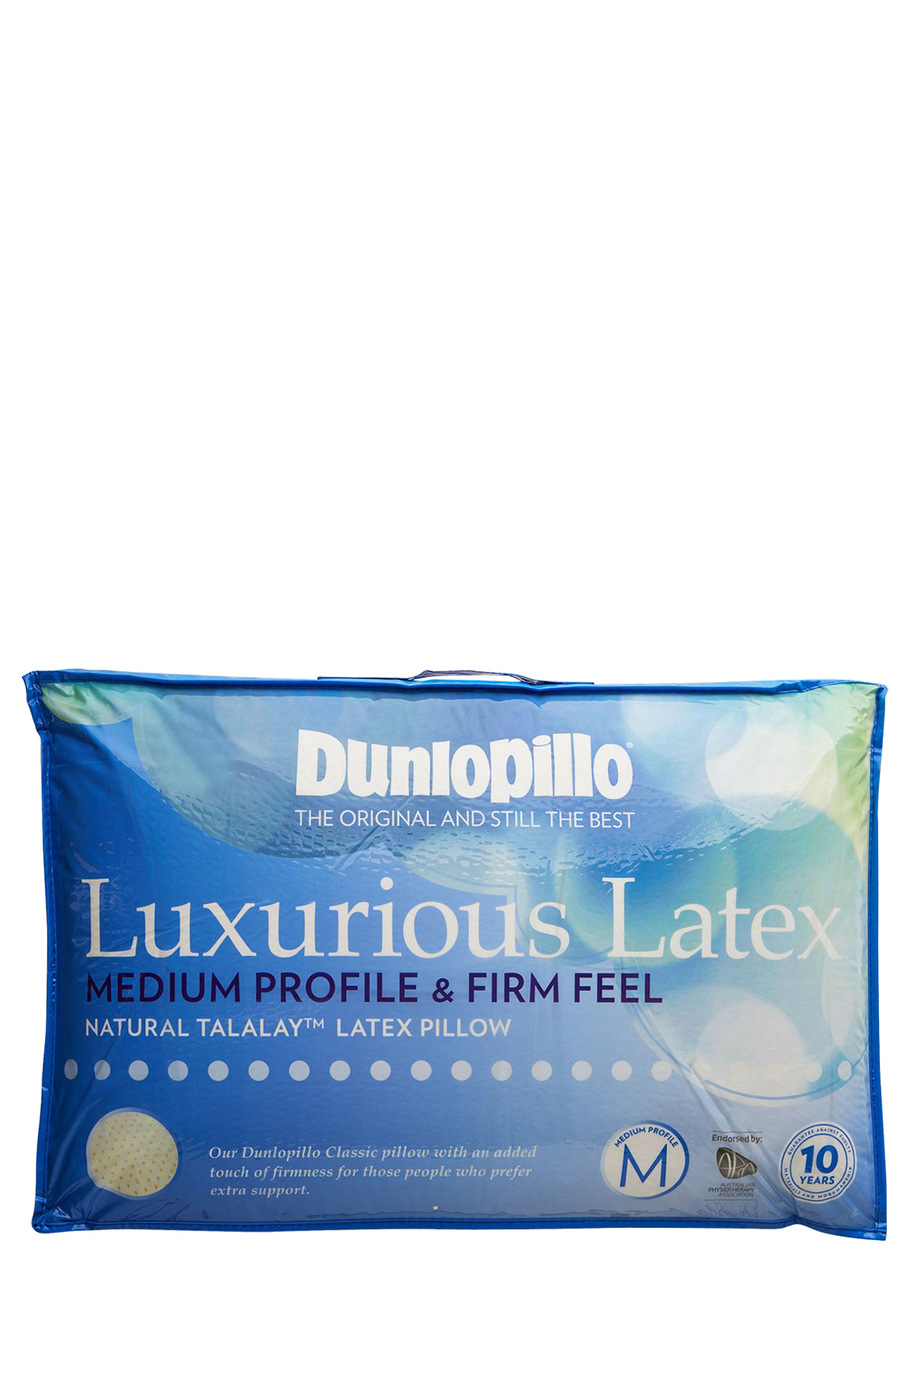 Dunlopillo talalay latex medium profile pillow in firm feel myer online - Dunlopillo 100 latex ...